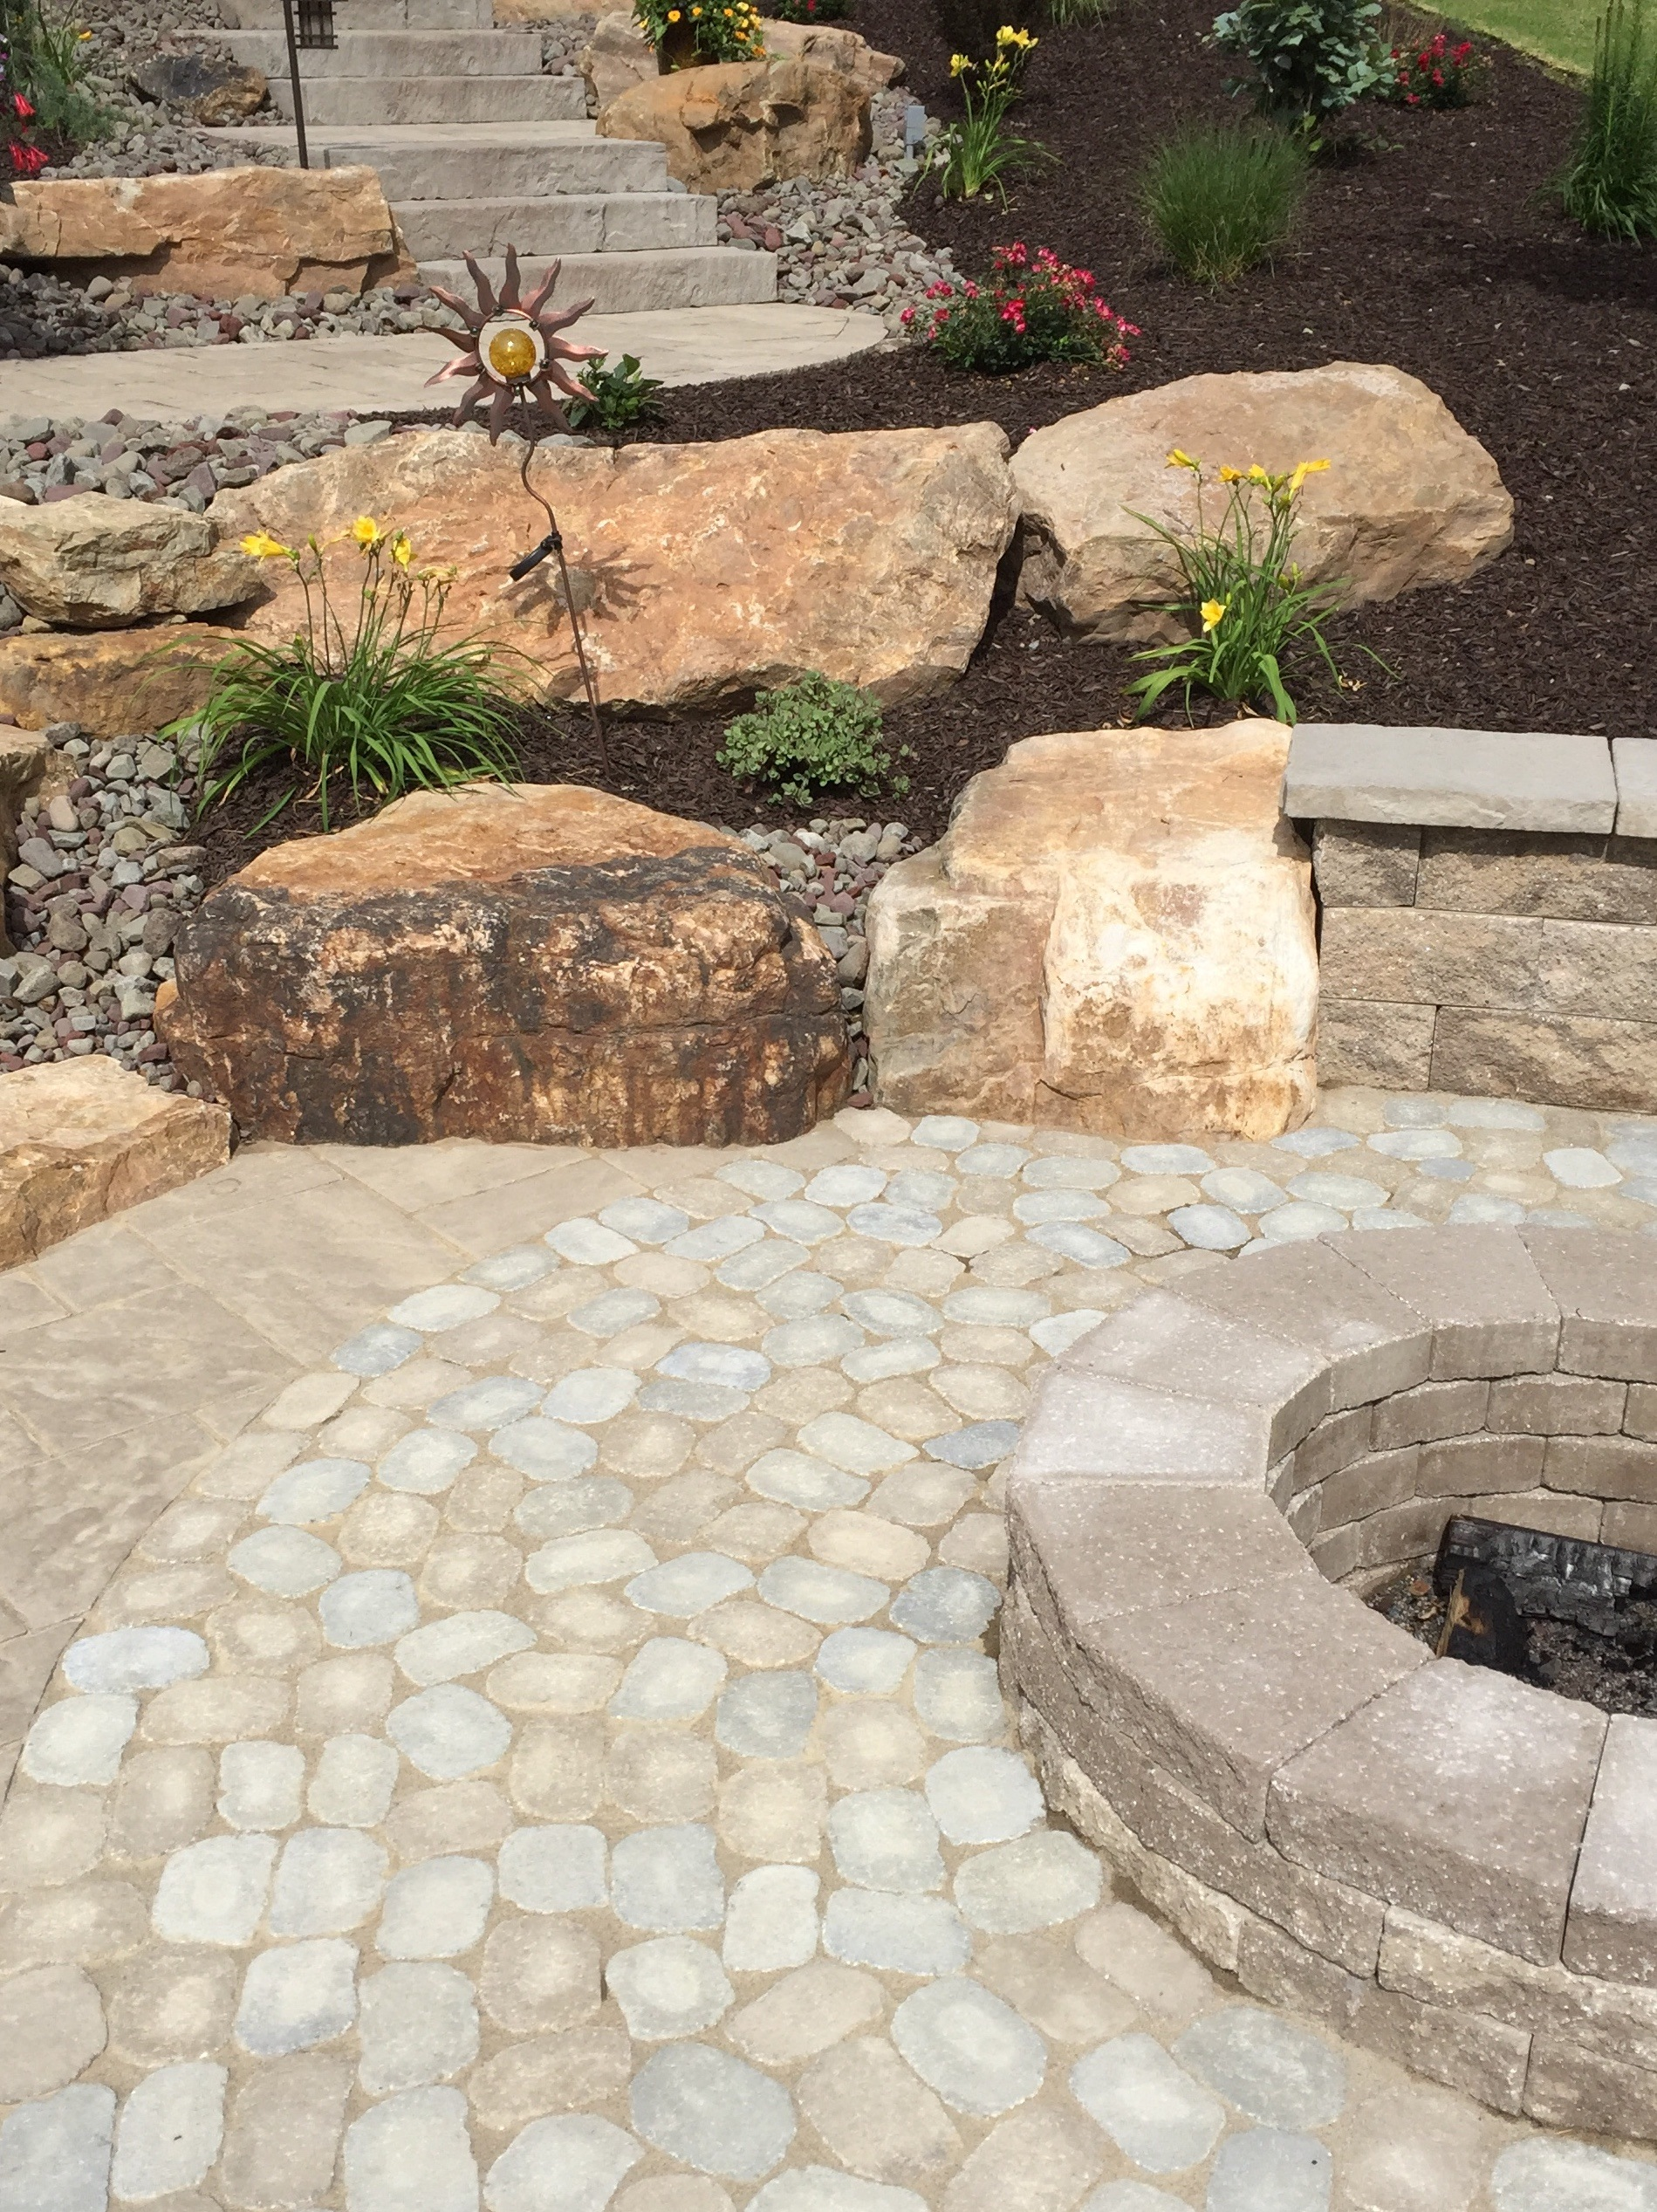 Professional landscape design with a fire pit inWayne Township, PA